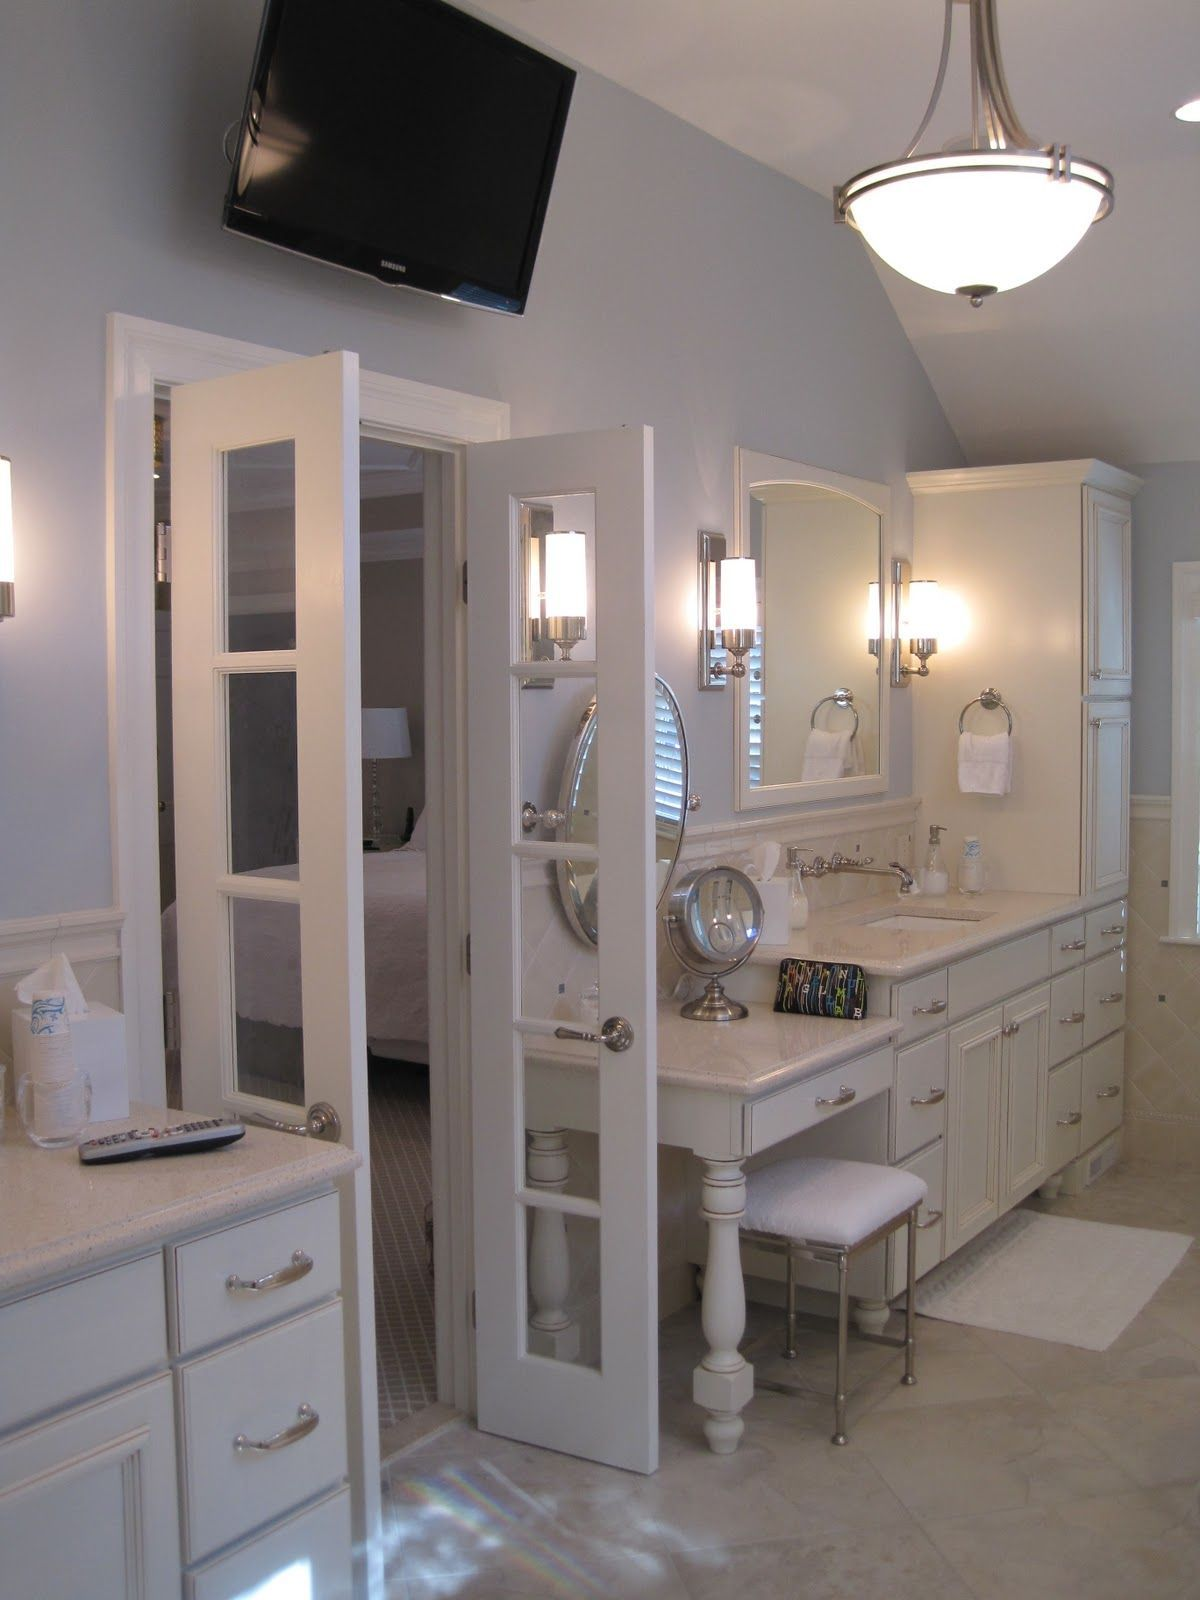 29 Awesome Bath Master Split Double Vanity Fancydecors Master Suite Bathroom Master Bedroom Renovation Master Suite Addition [ 1600 x 1200 Pixel ]